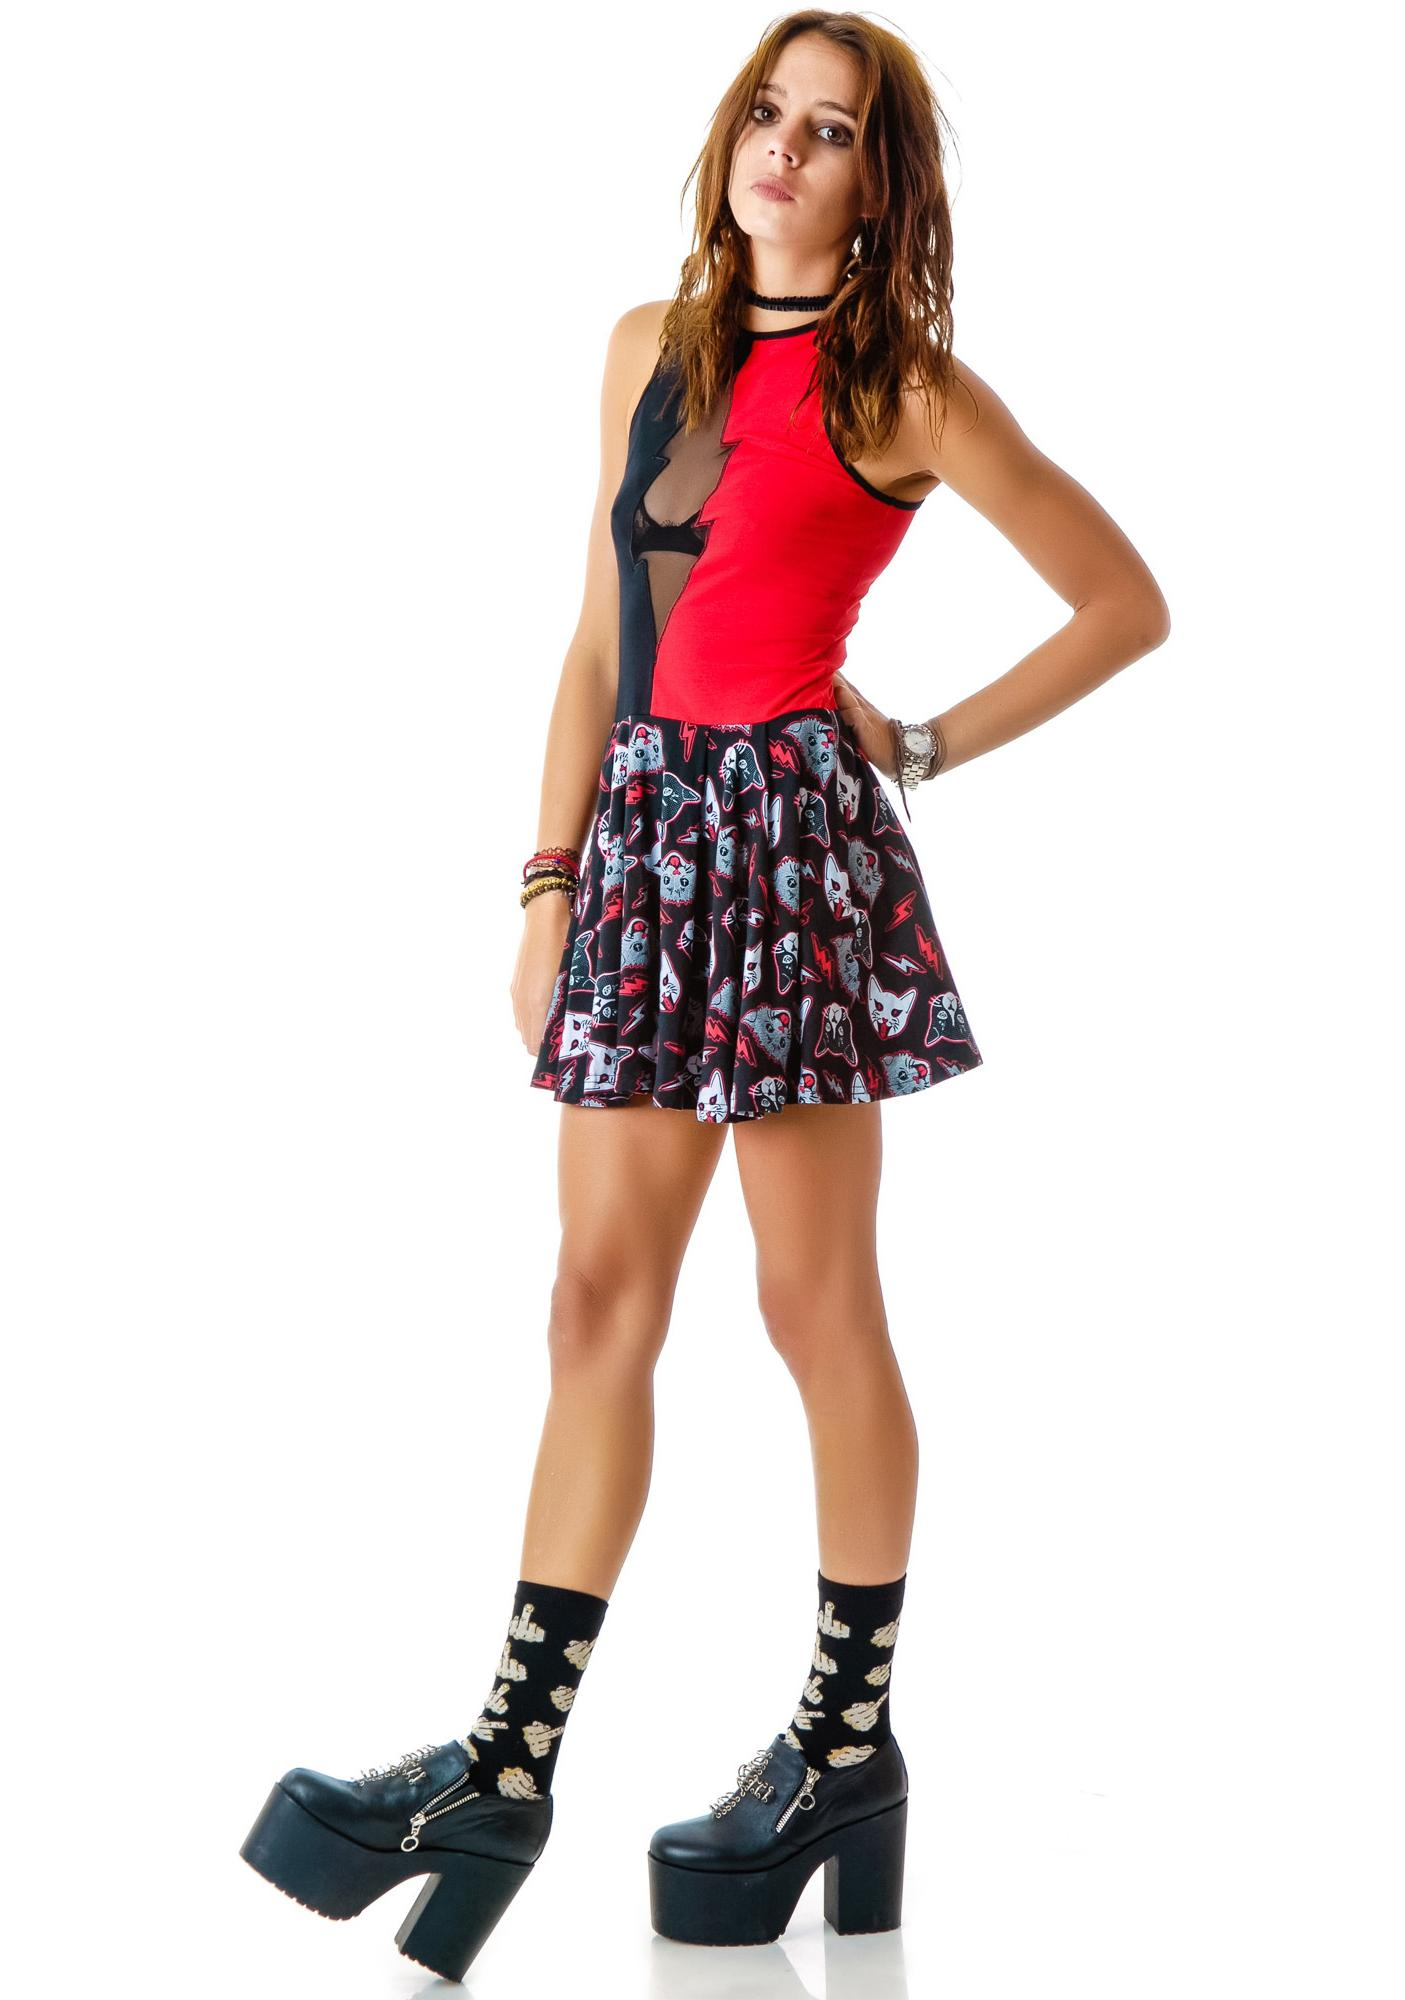 Too Fast Kitty Rocks Omen Skater Dress